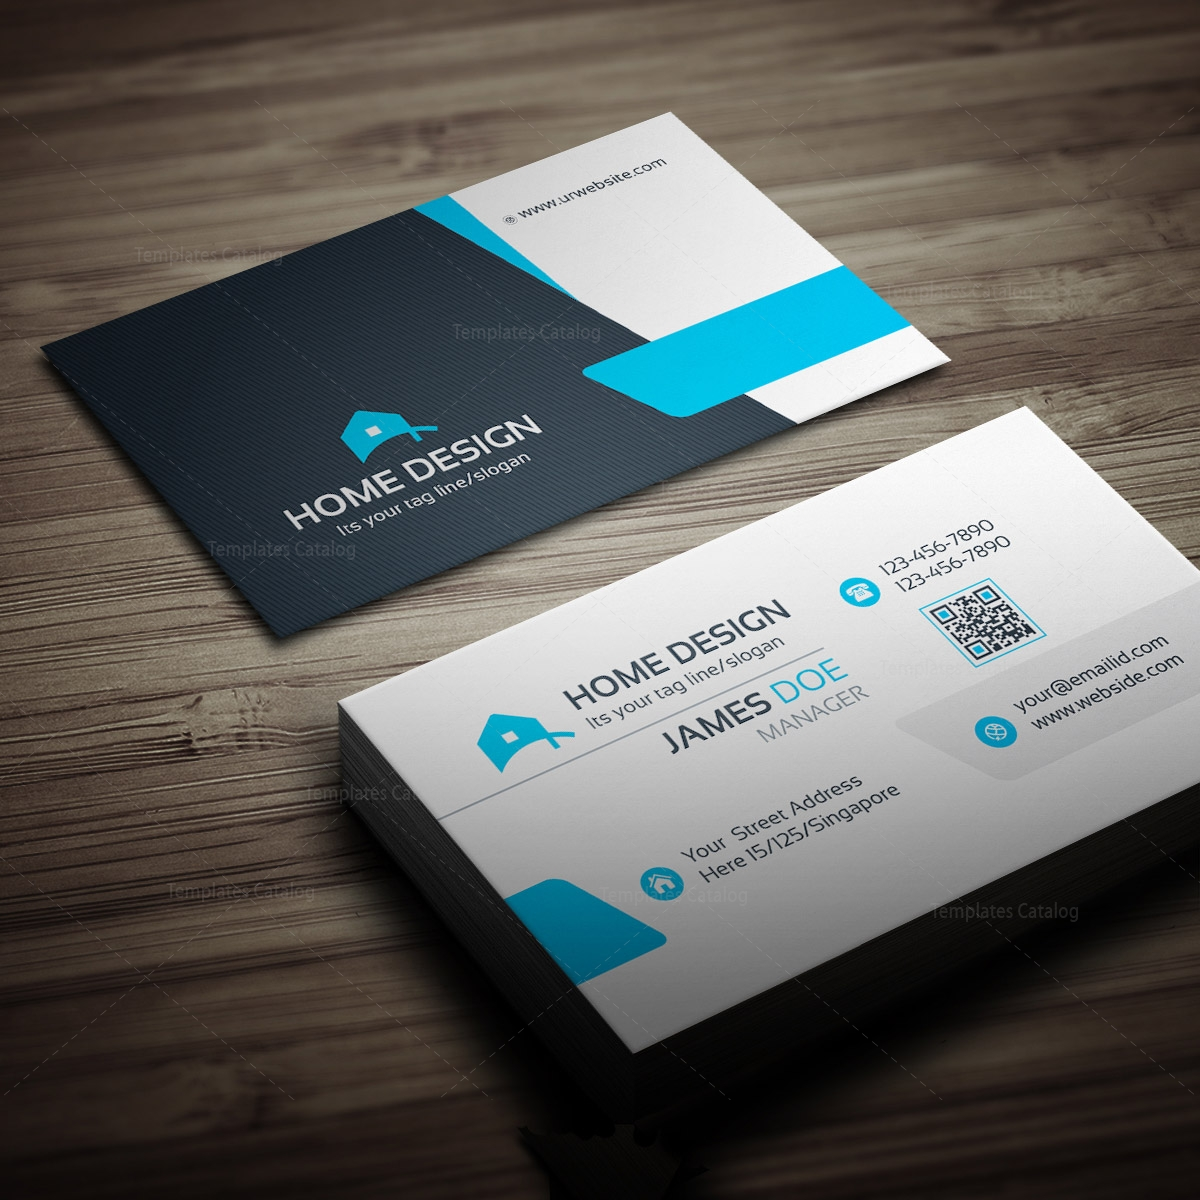 Home design business card template 000258 template catalog for Busniess card template